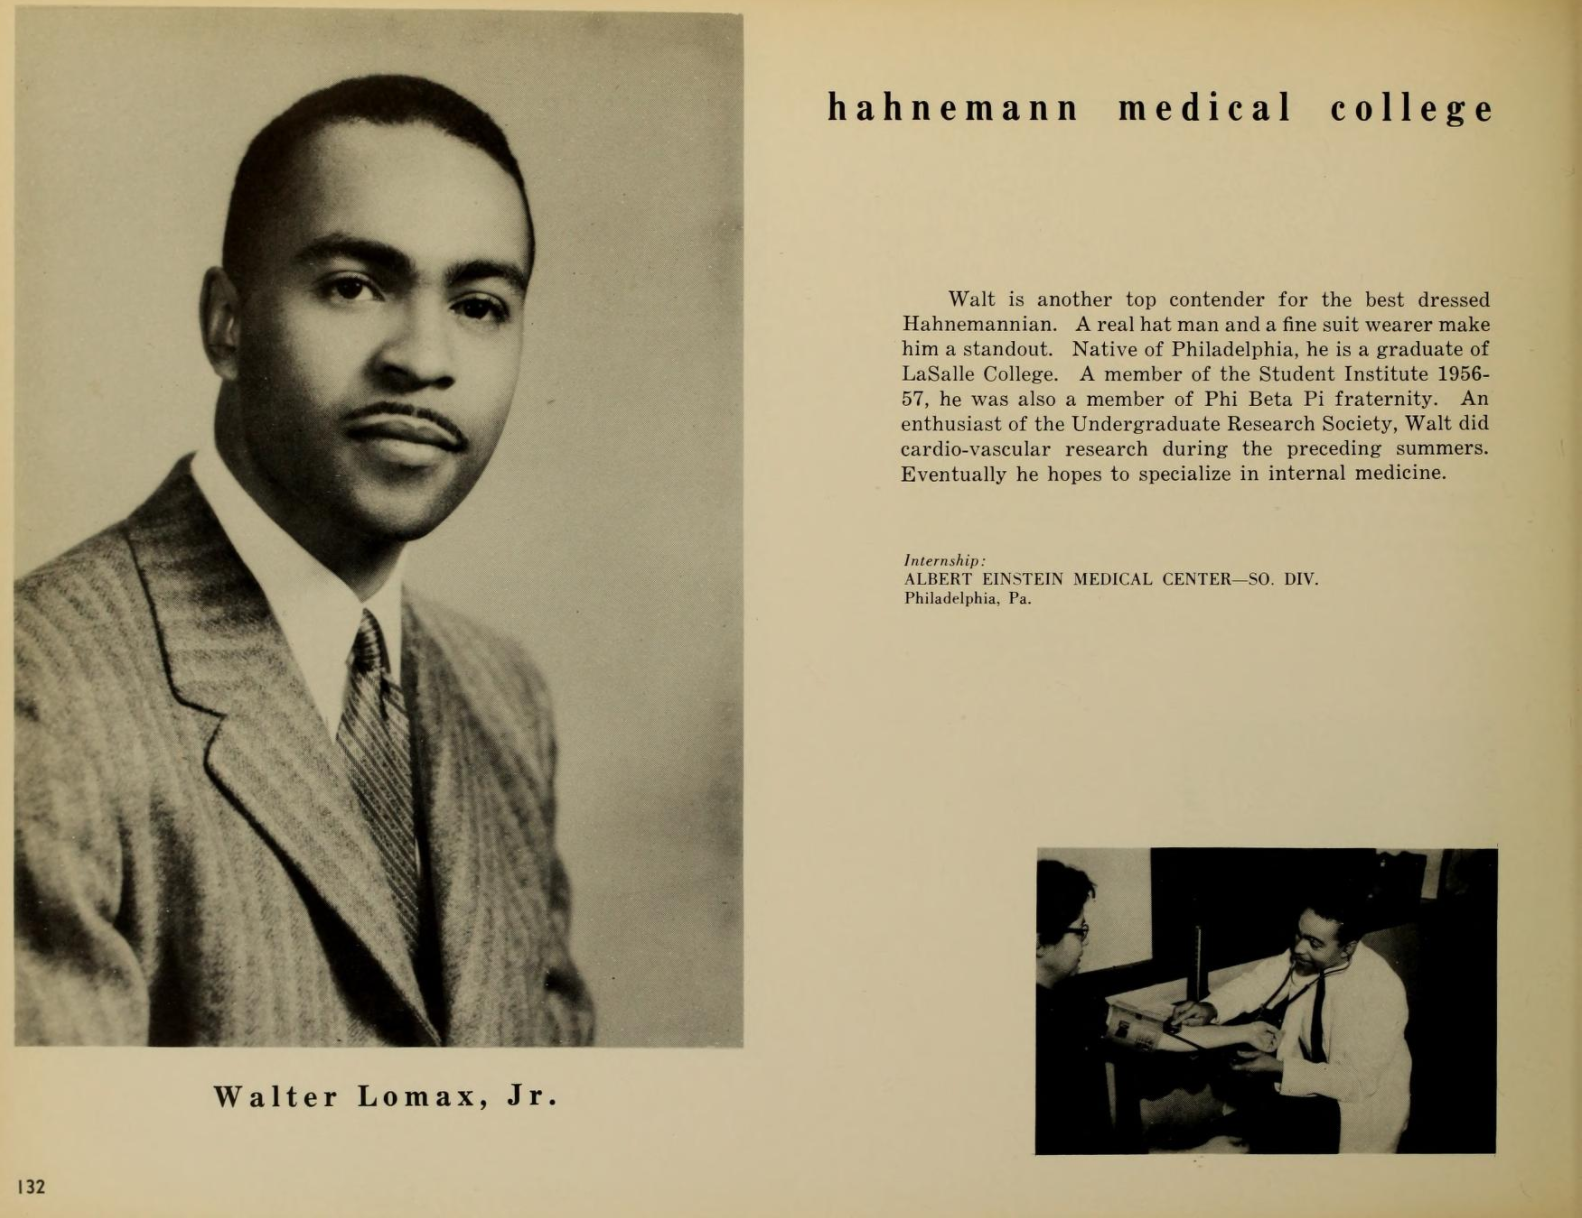 The 1957 Hahnemann yearbook entry for Walter P. Lomax Jr.